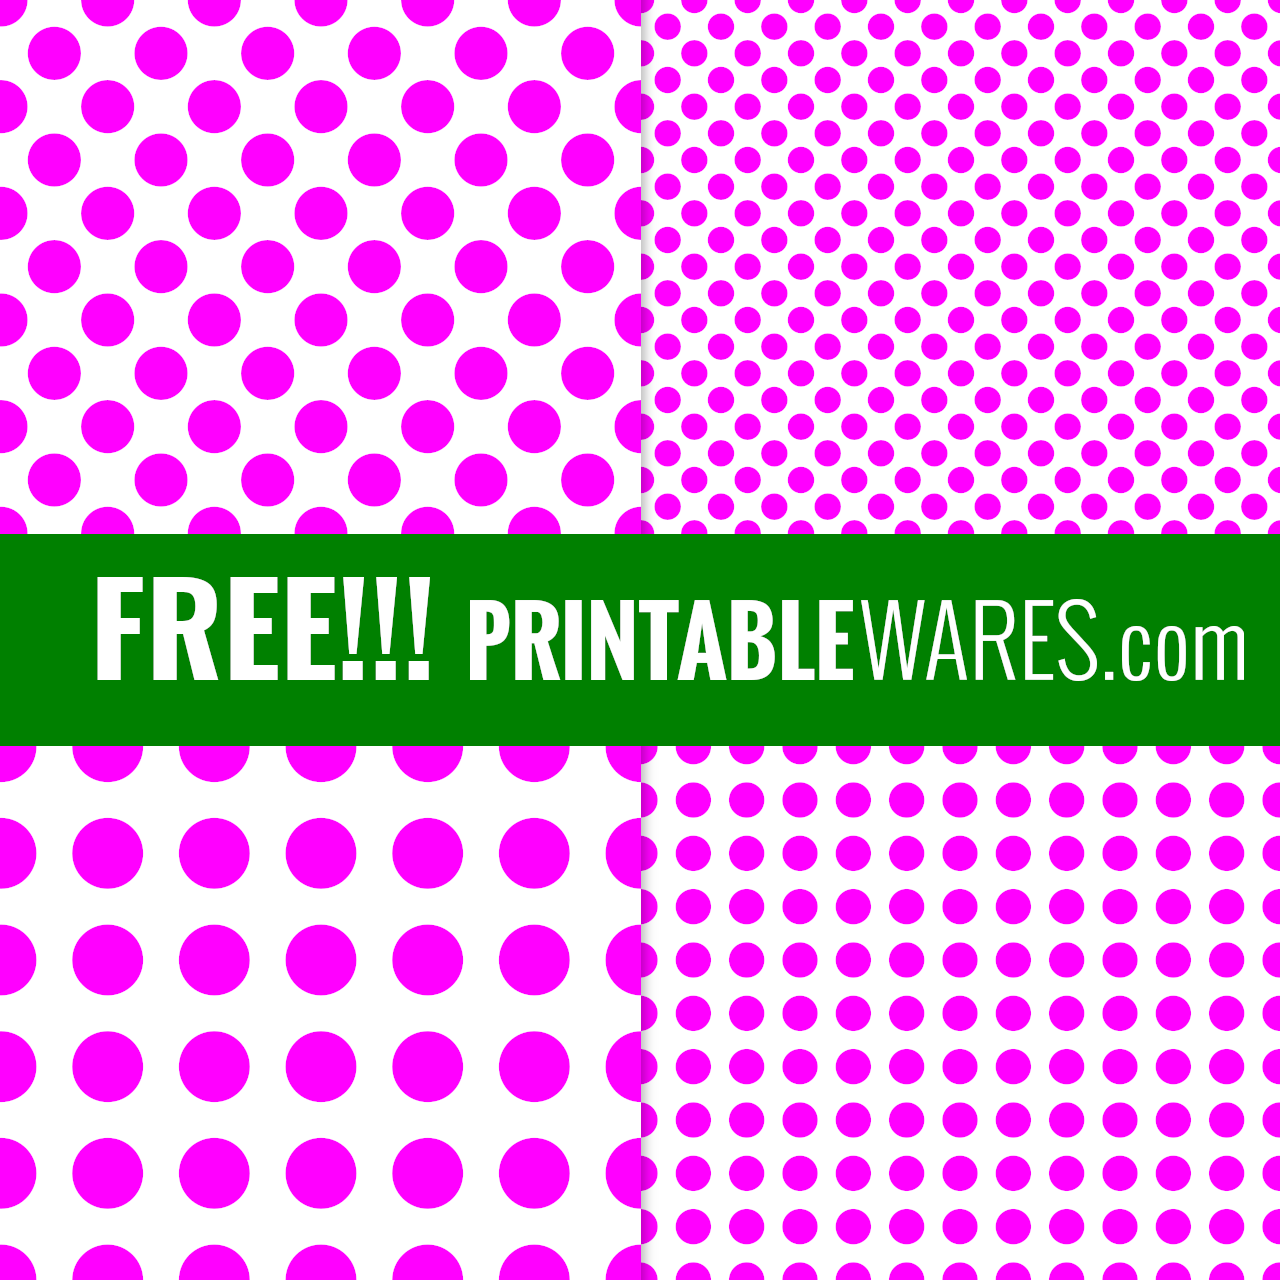 Hot Pink Patterned Backgrounds Free